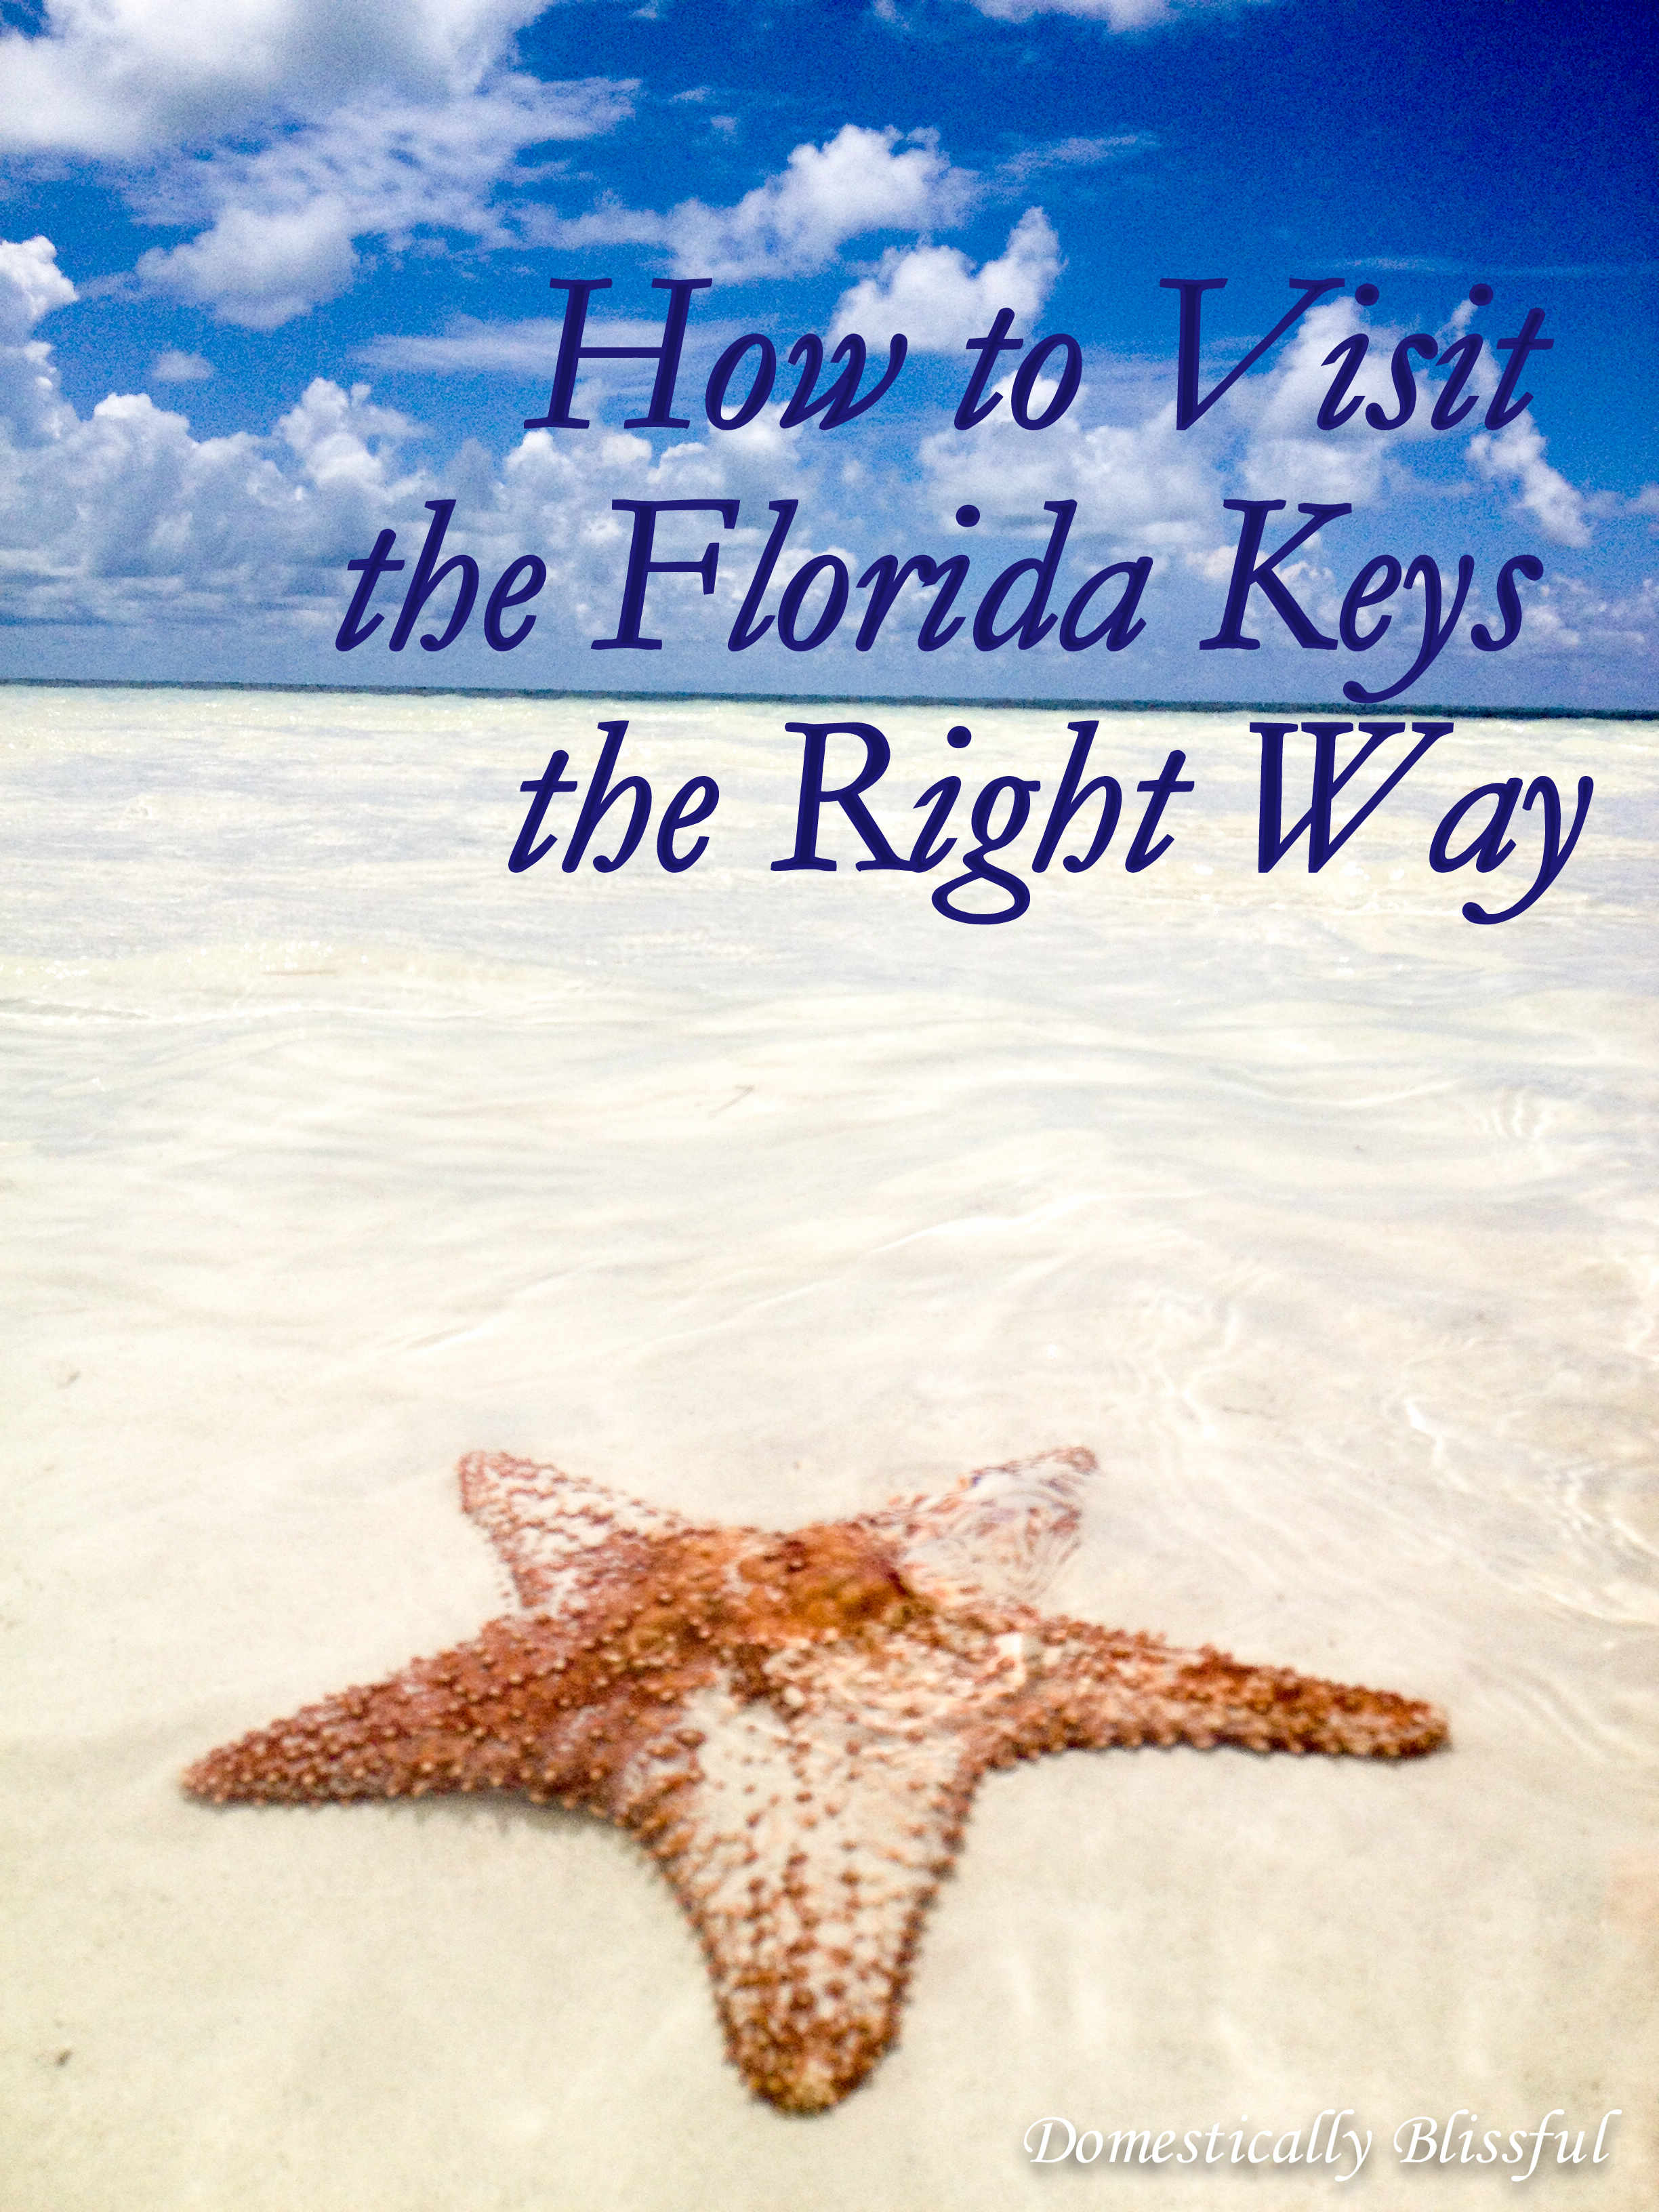 How to Visit the Florida Keys the Right Way